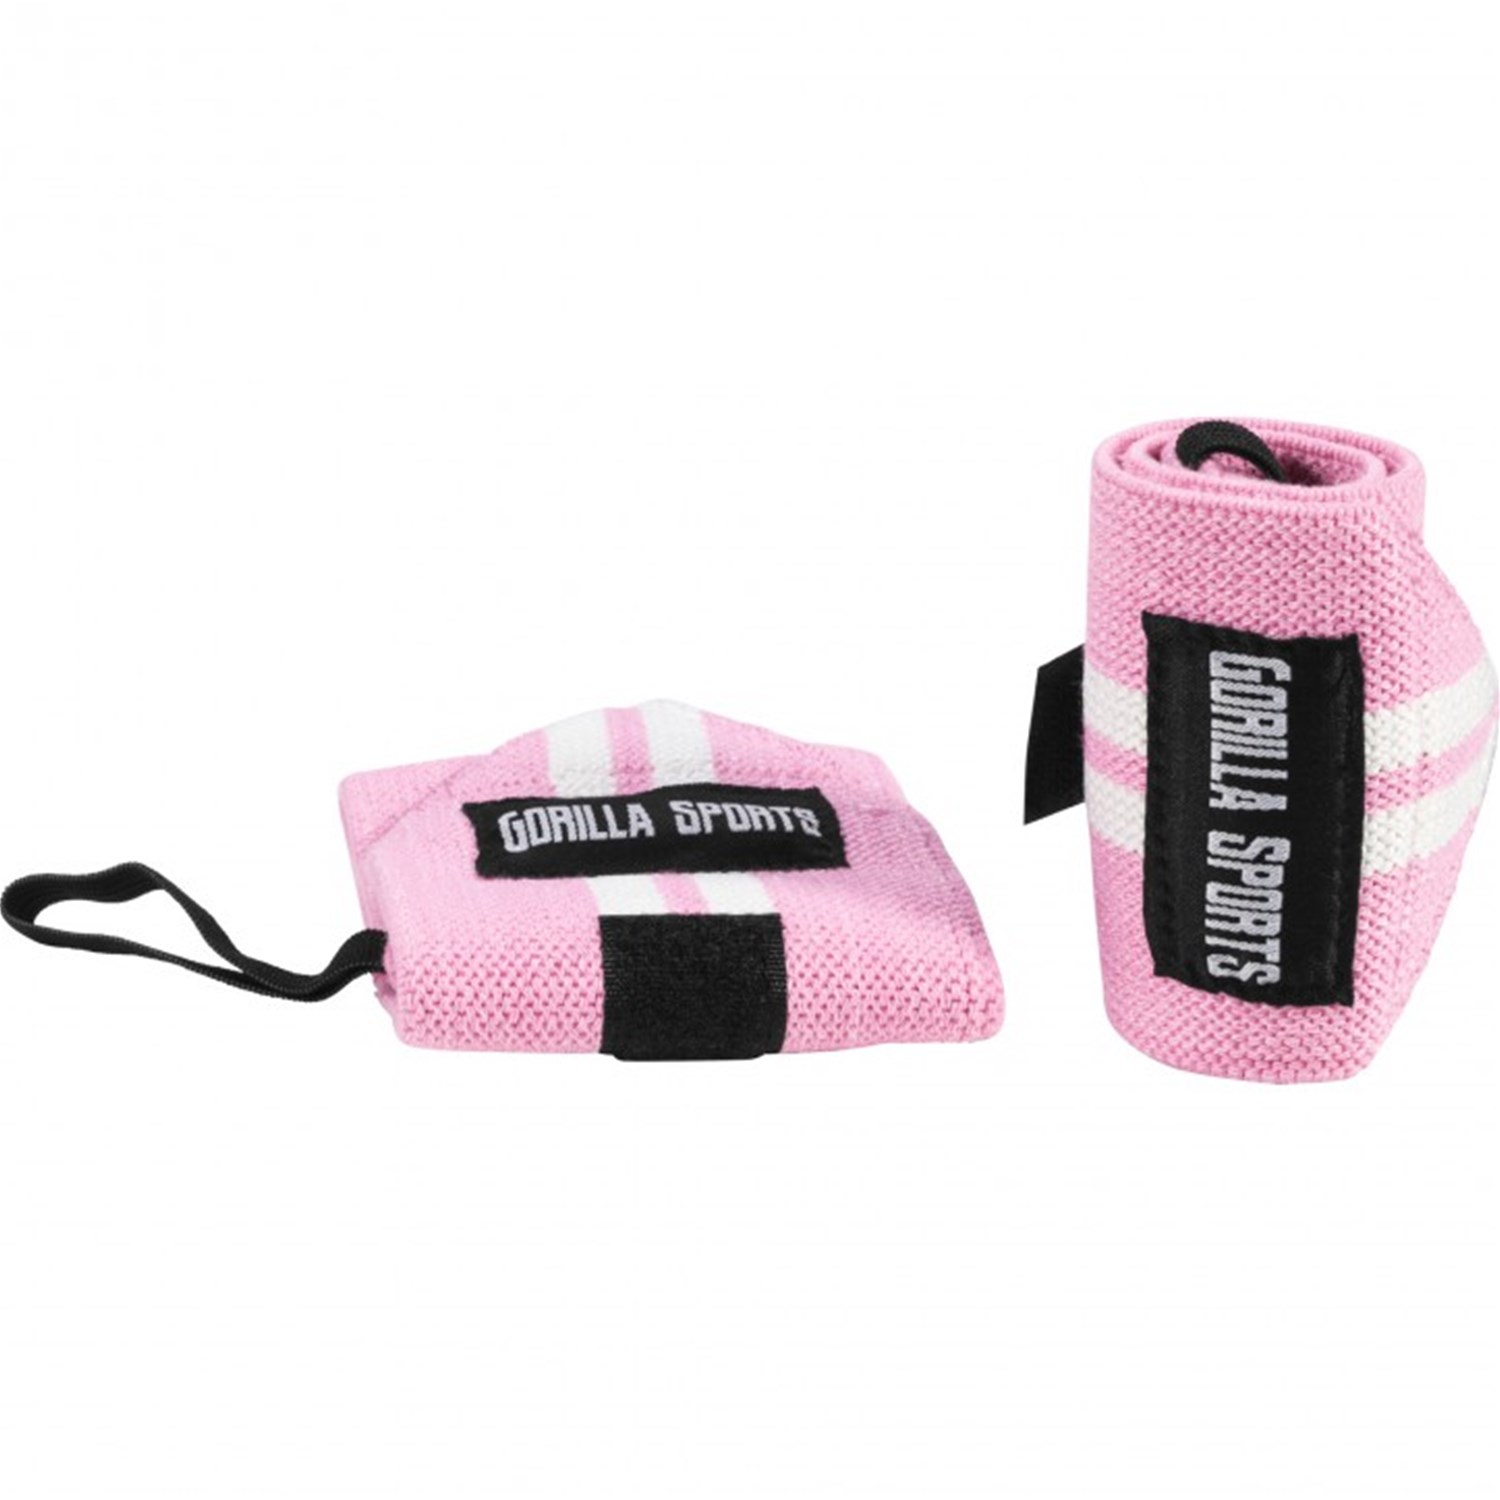 Gorilla Sports Wrist-Wraps - 8